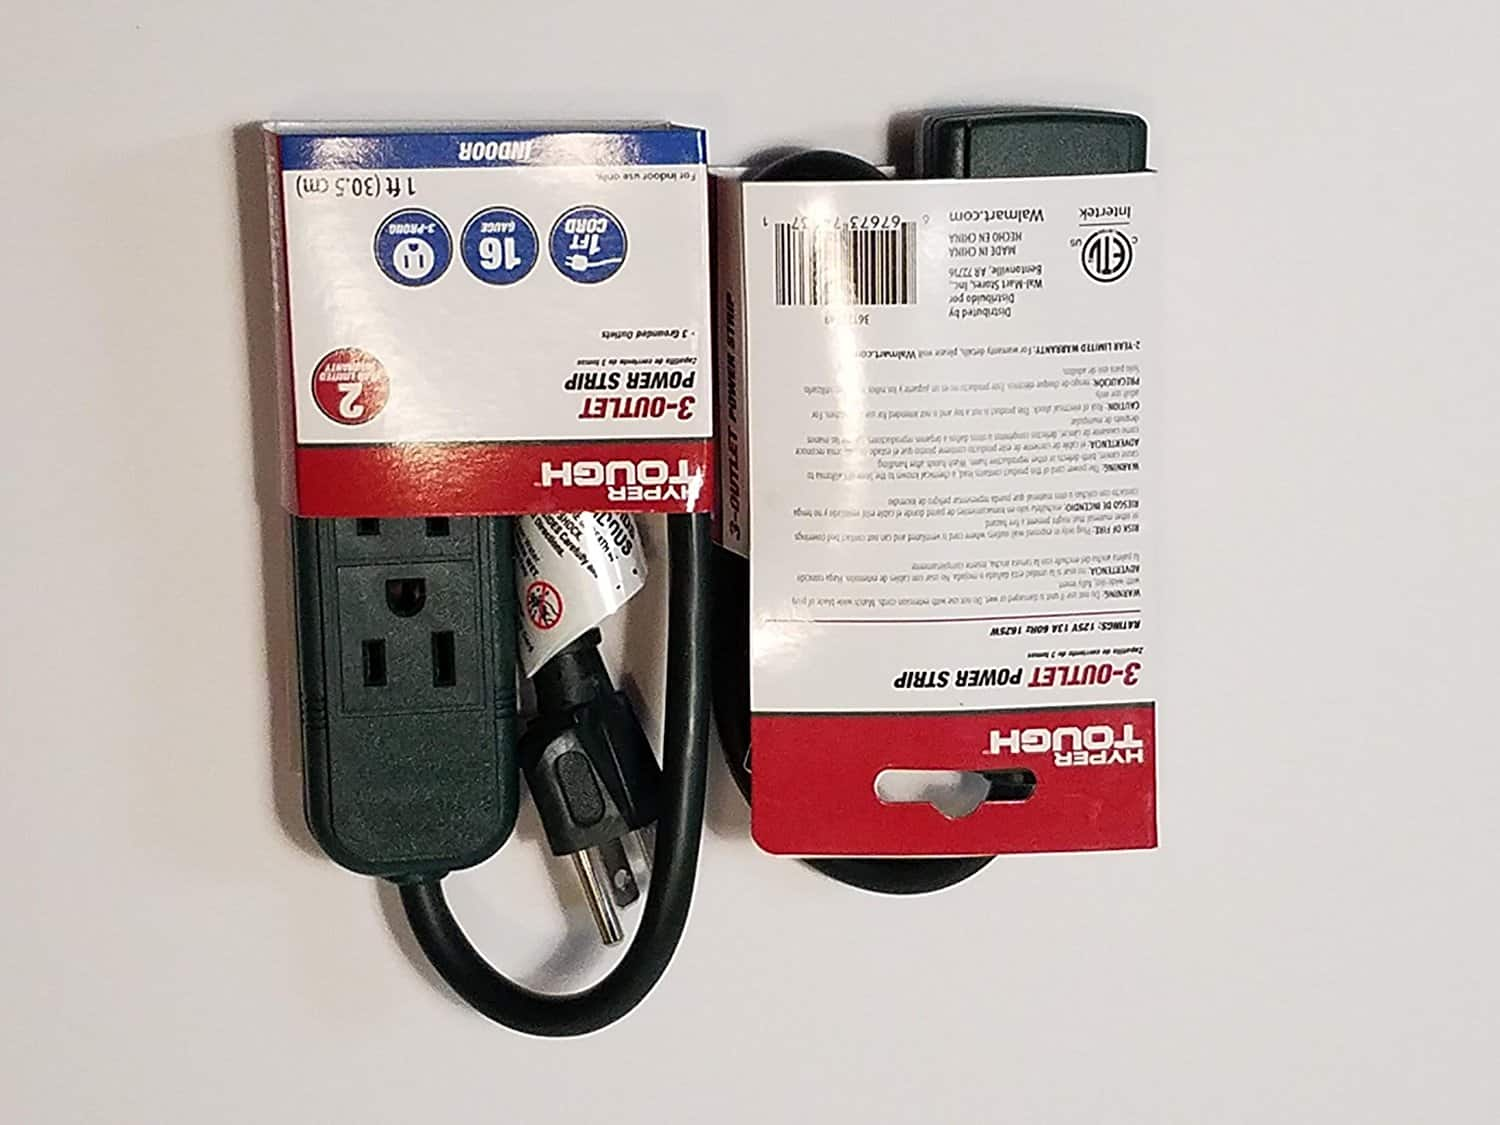 YMMV In Store Walmart Hyper Tough 3-Outlet Power Strip, 16 Gauge, 1ft Cord $0.10